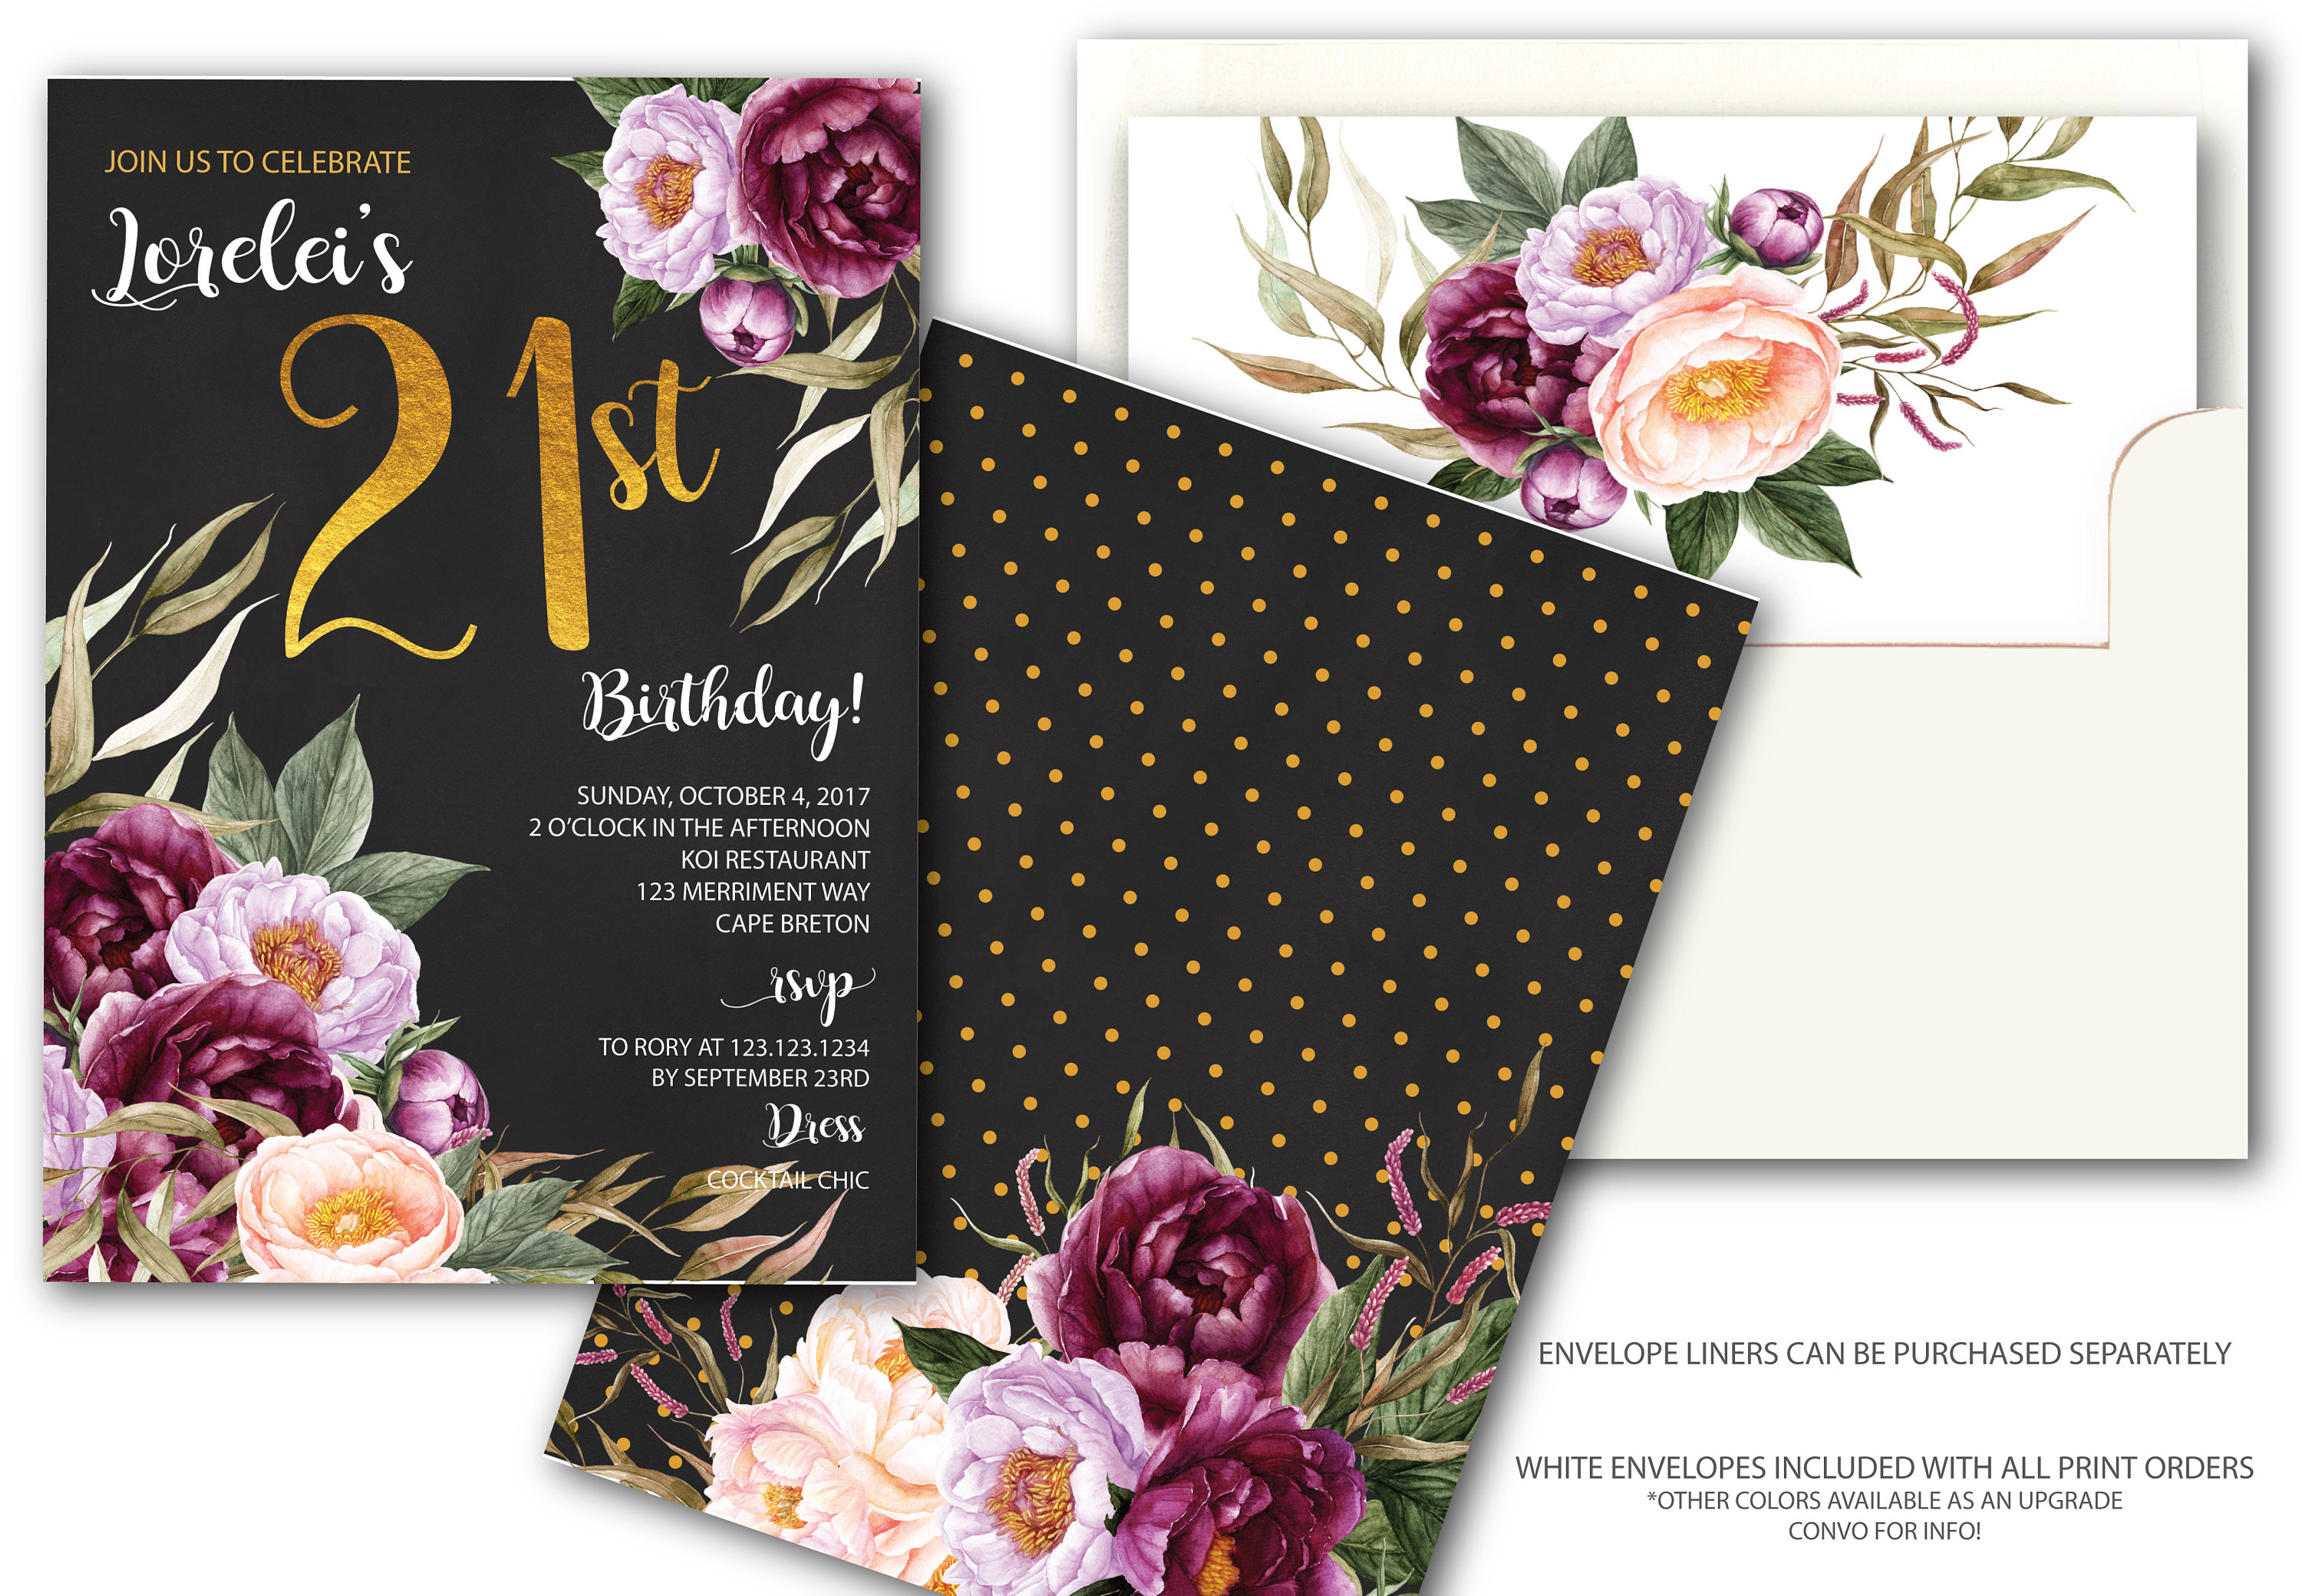 21st Birthday Invitation Burgundy Floral